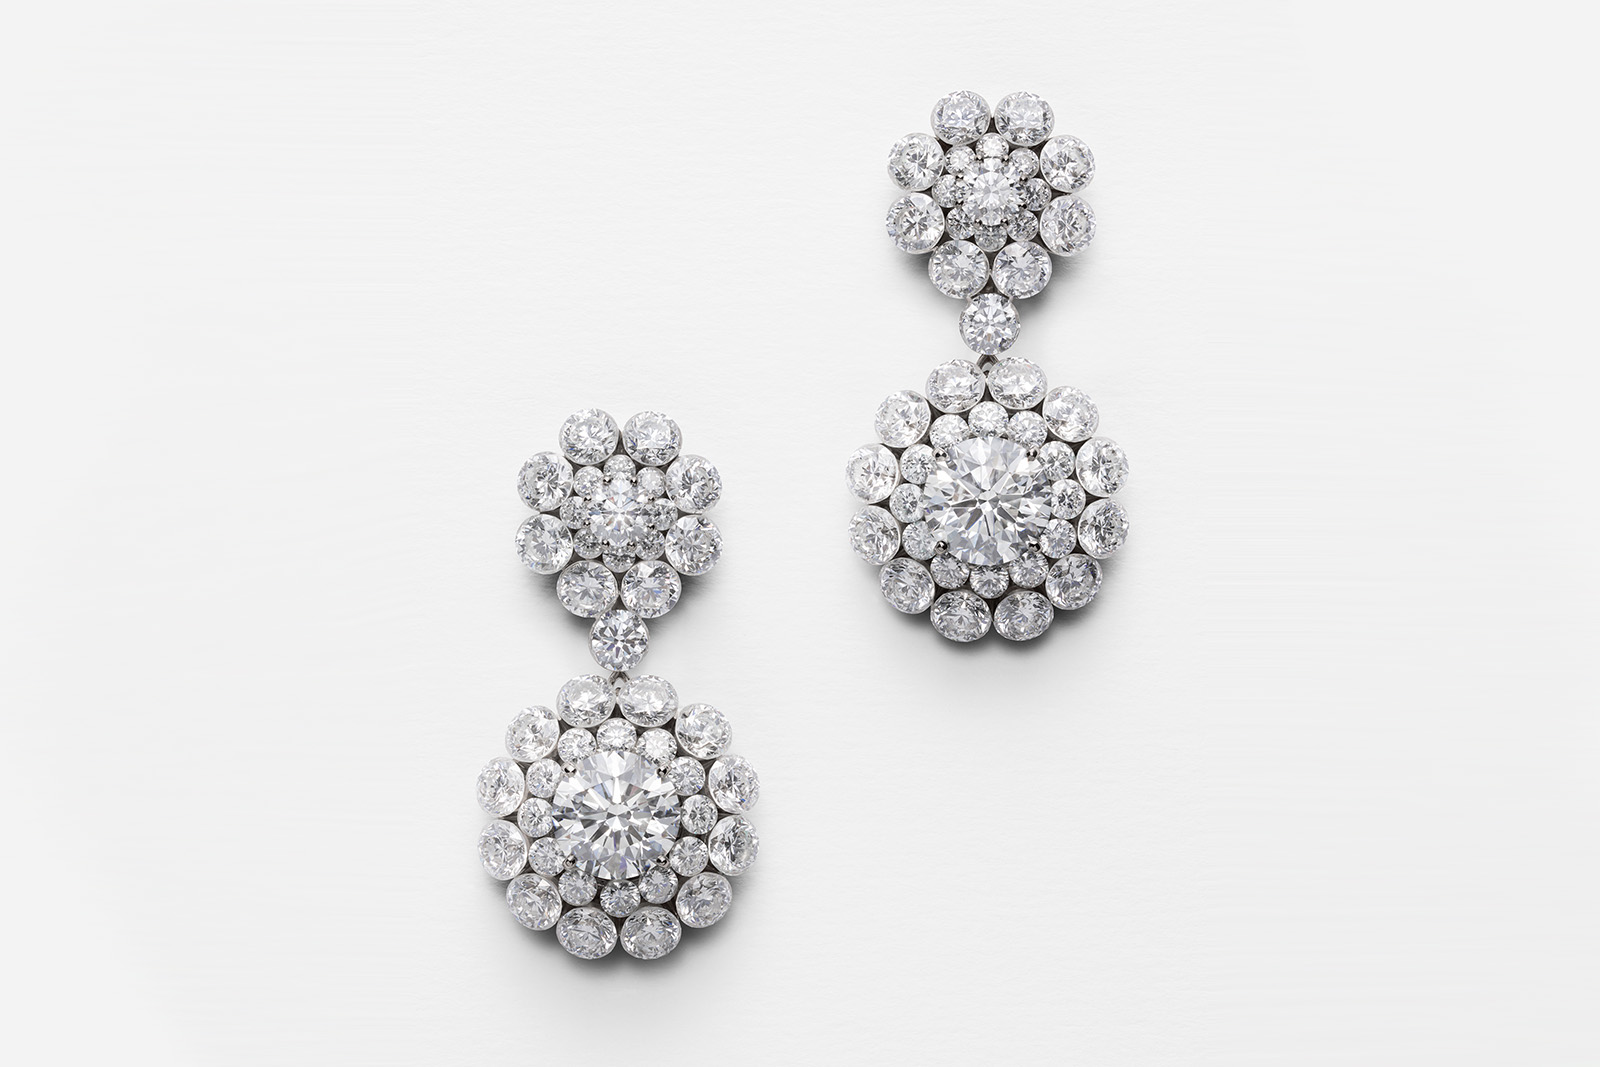 Chopard 'Magical Setting' earrings with diamonds in 18k white gold